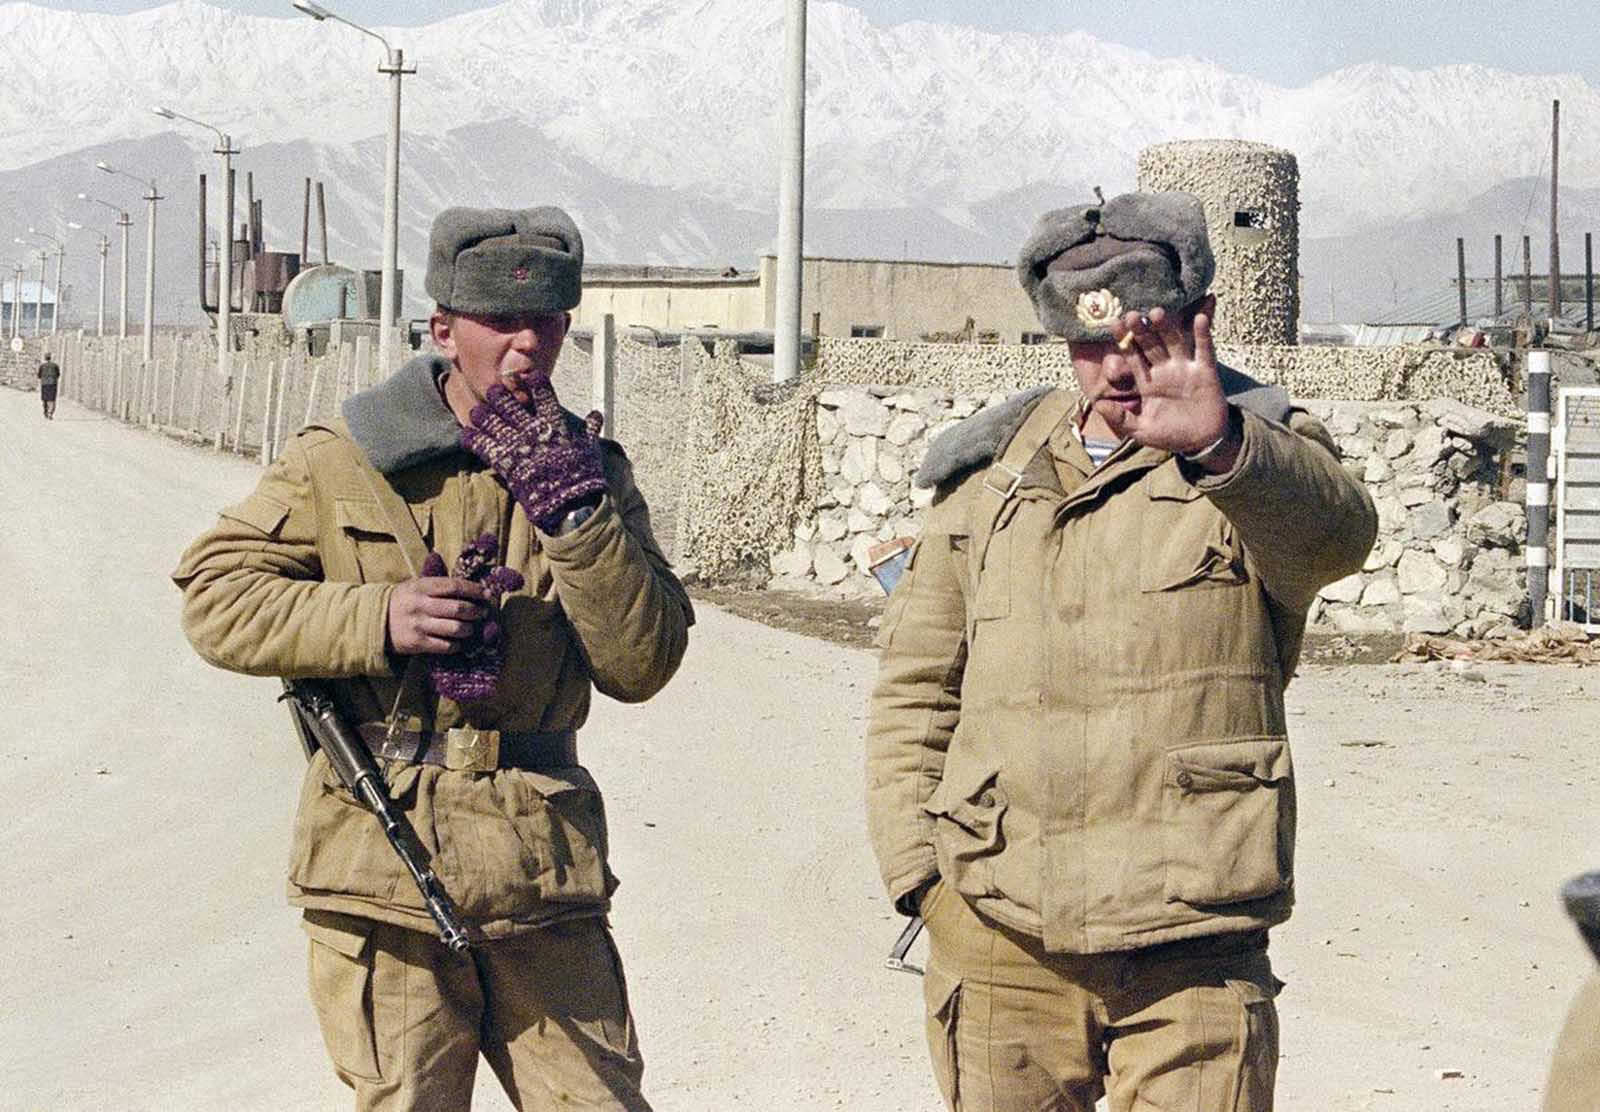 A Soviet soldier smokes a cigarette at a checkpoint of the Soviet military airport in Kabul on February 10, 1989 as the other one forbids pictures.